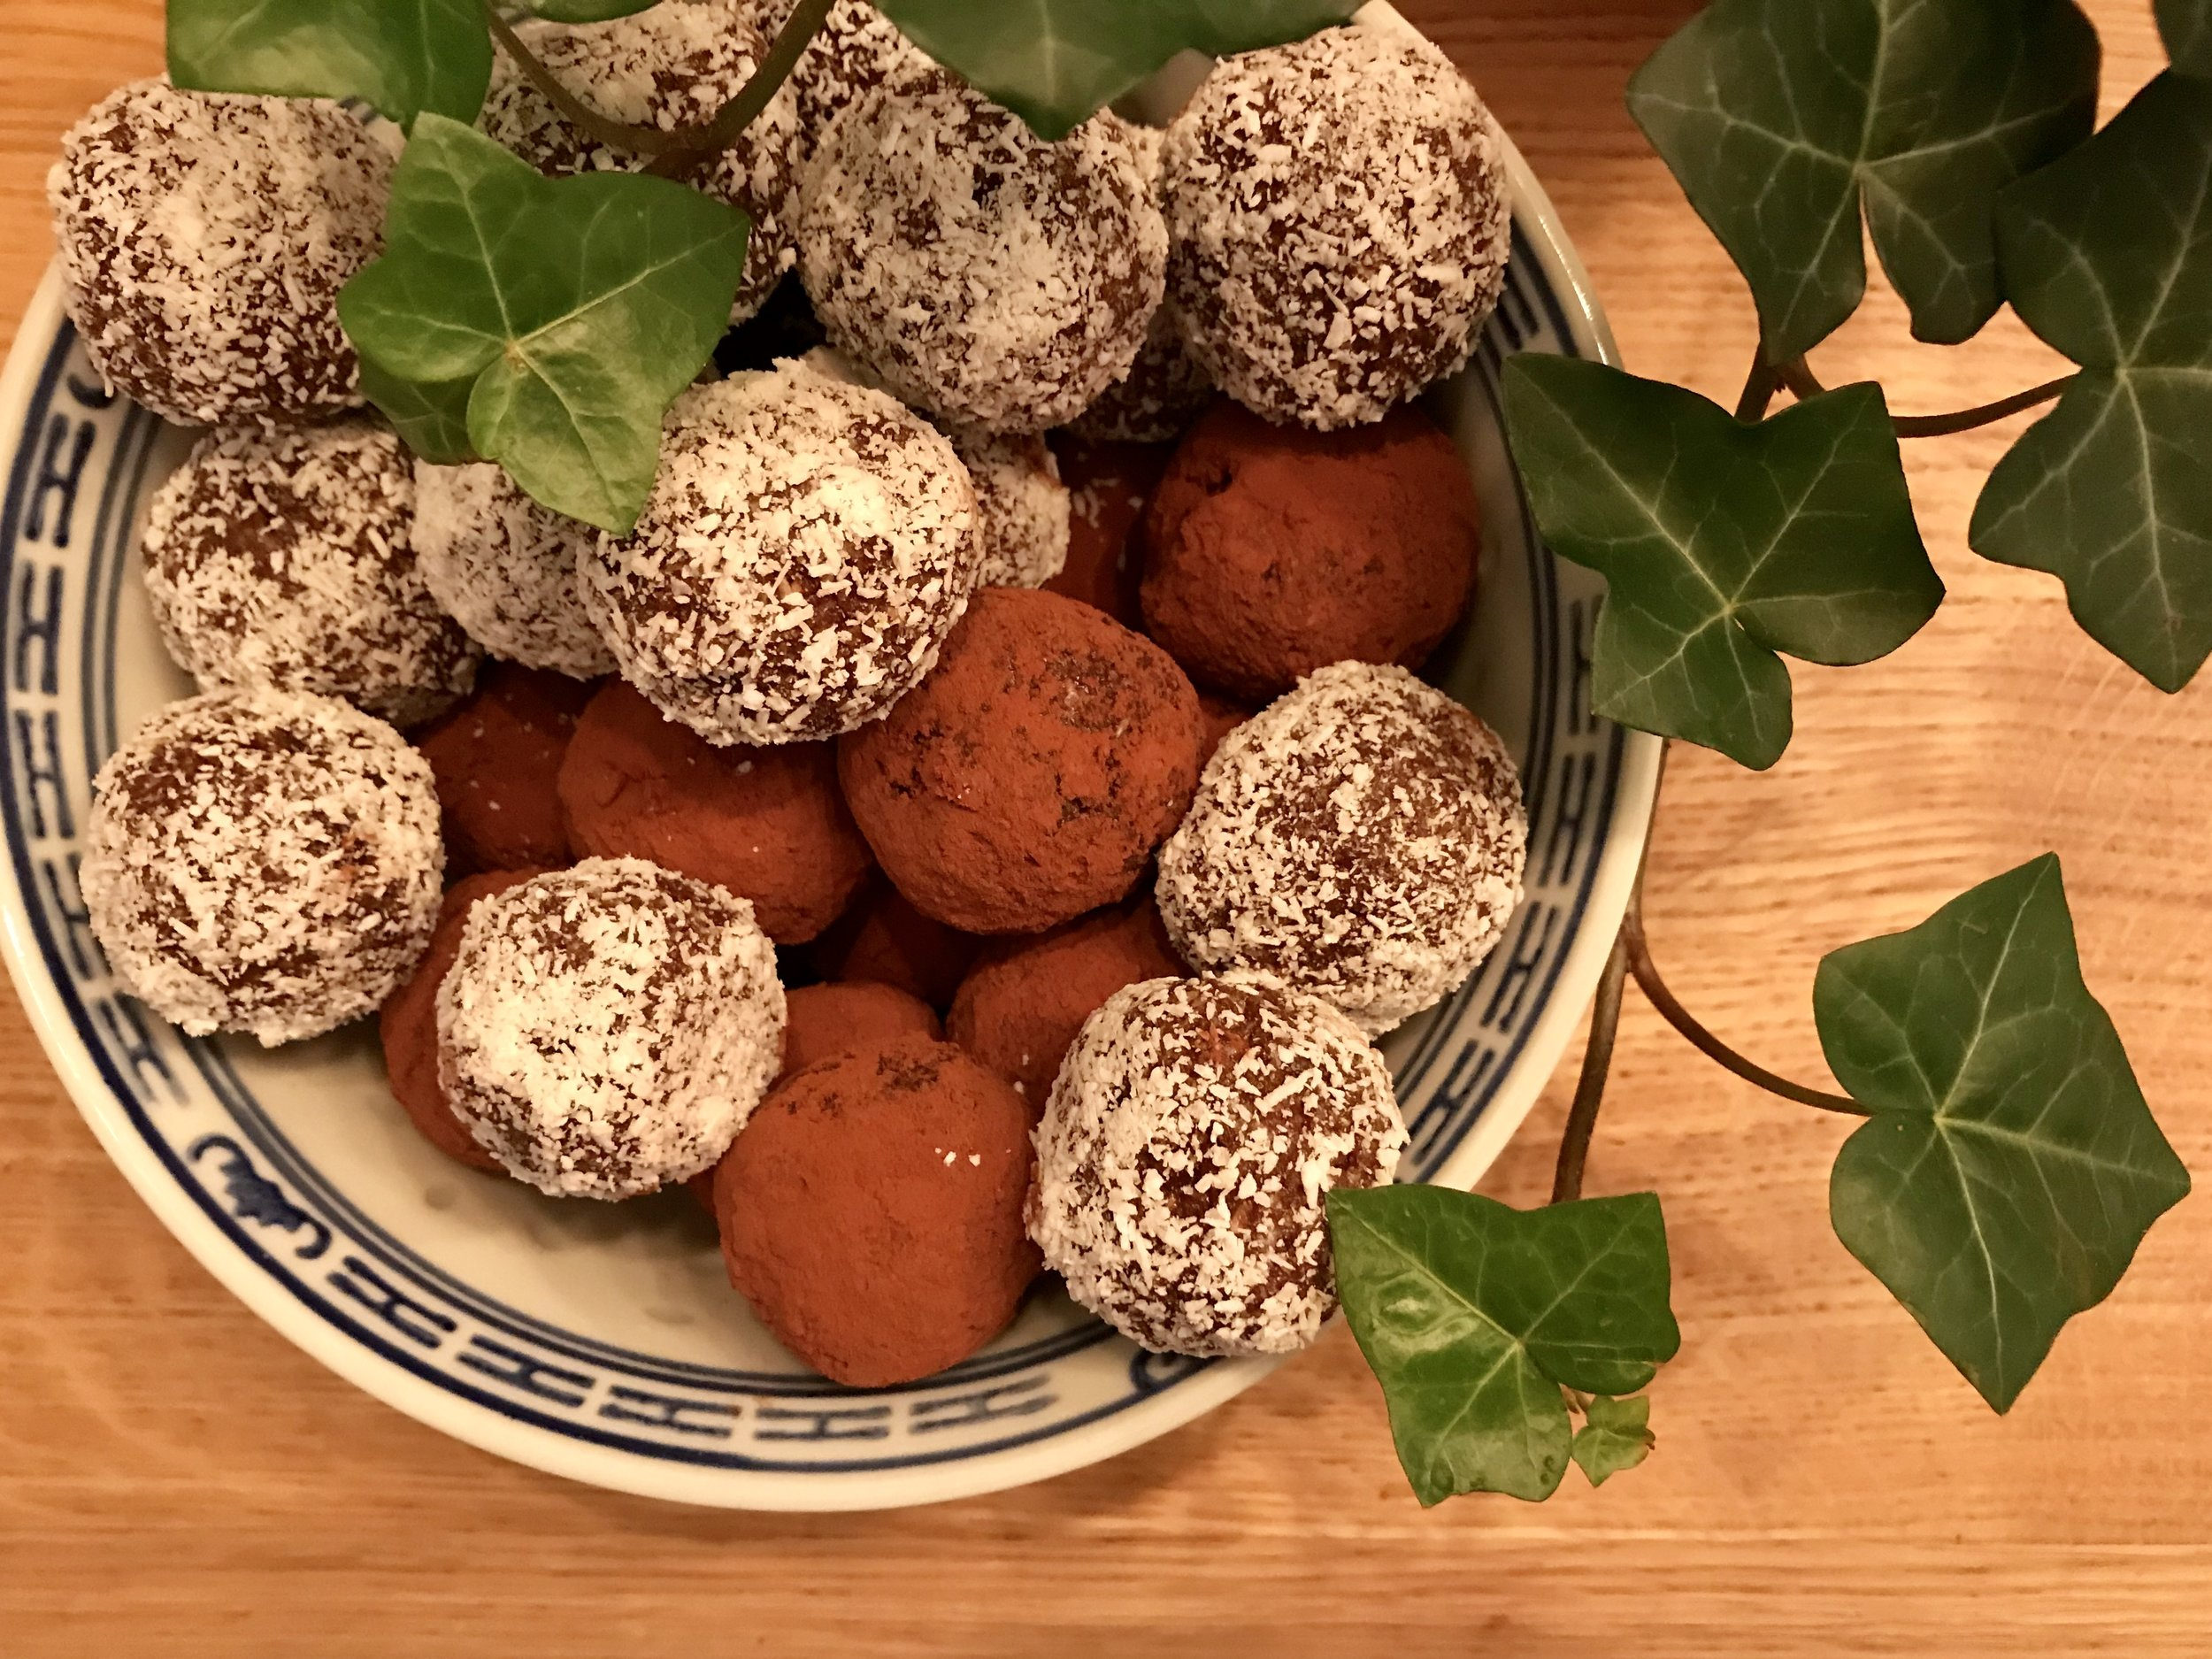 Rum balls dusted in coconut or cocoa powder